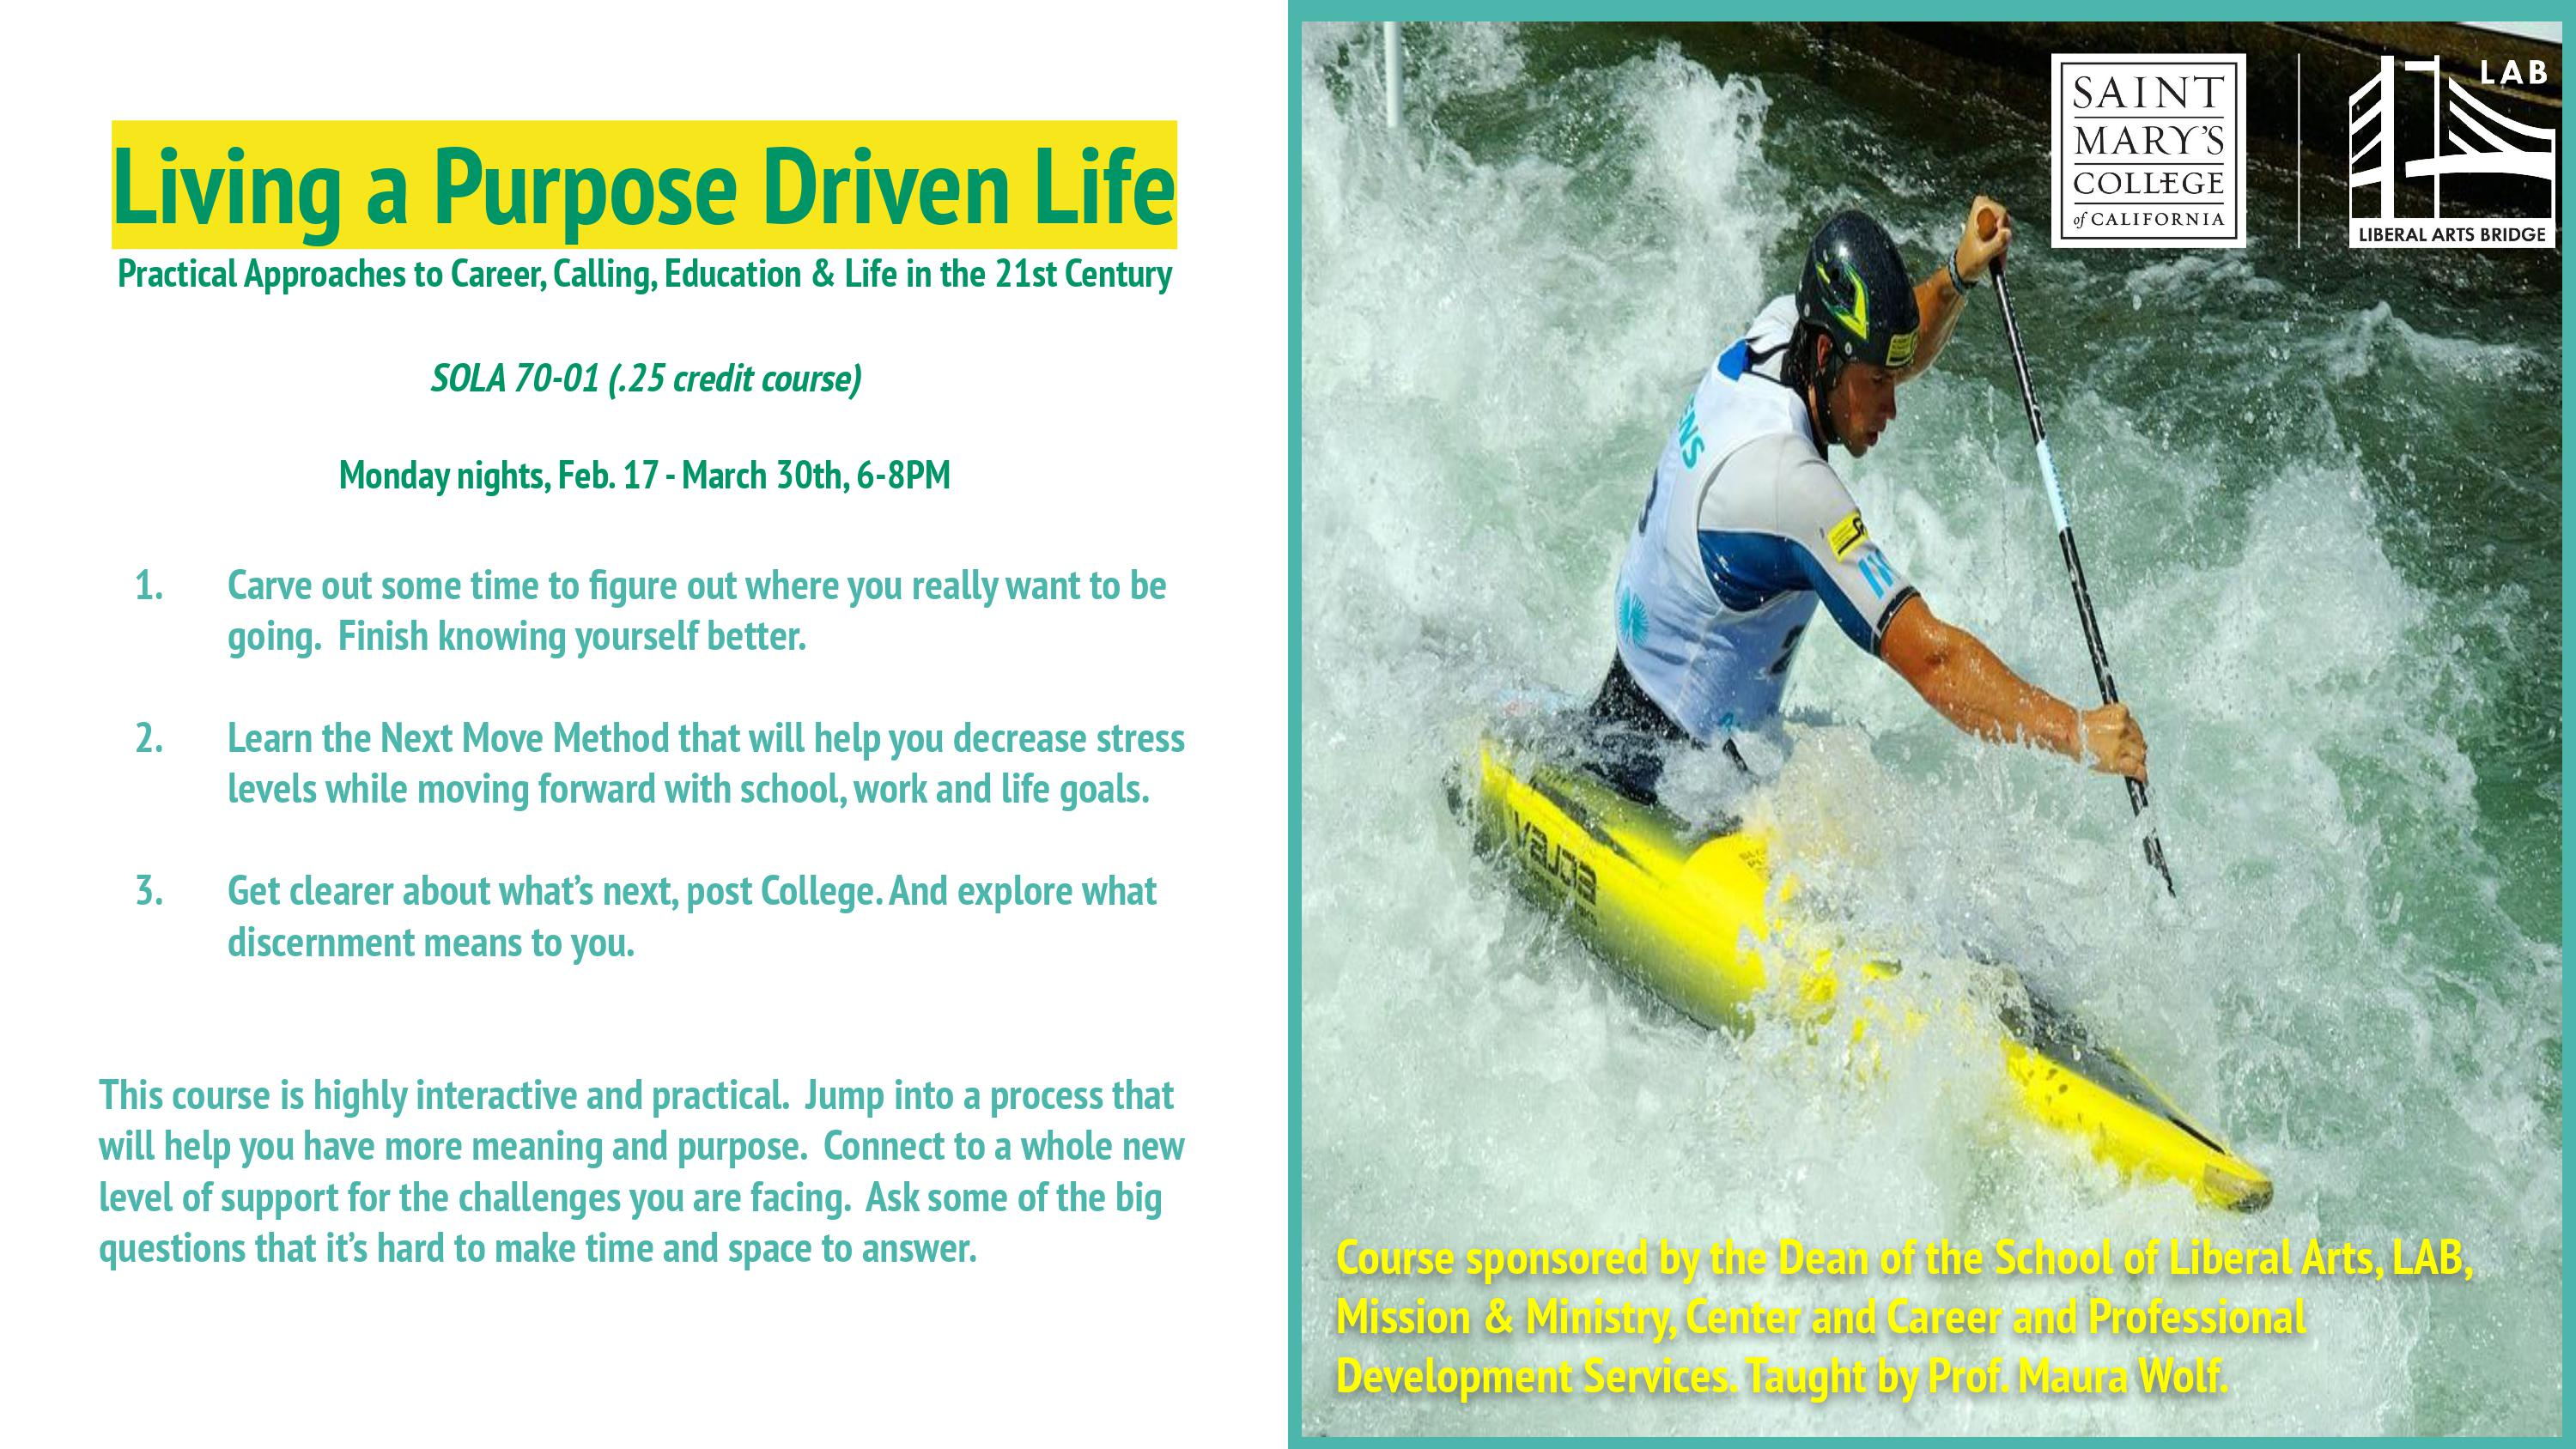 New Course Offering: SOLA 70-01 Living a Purpose Driven Life